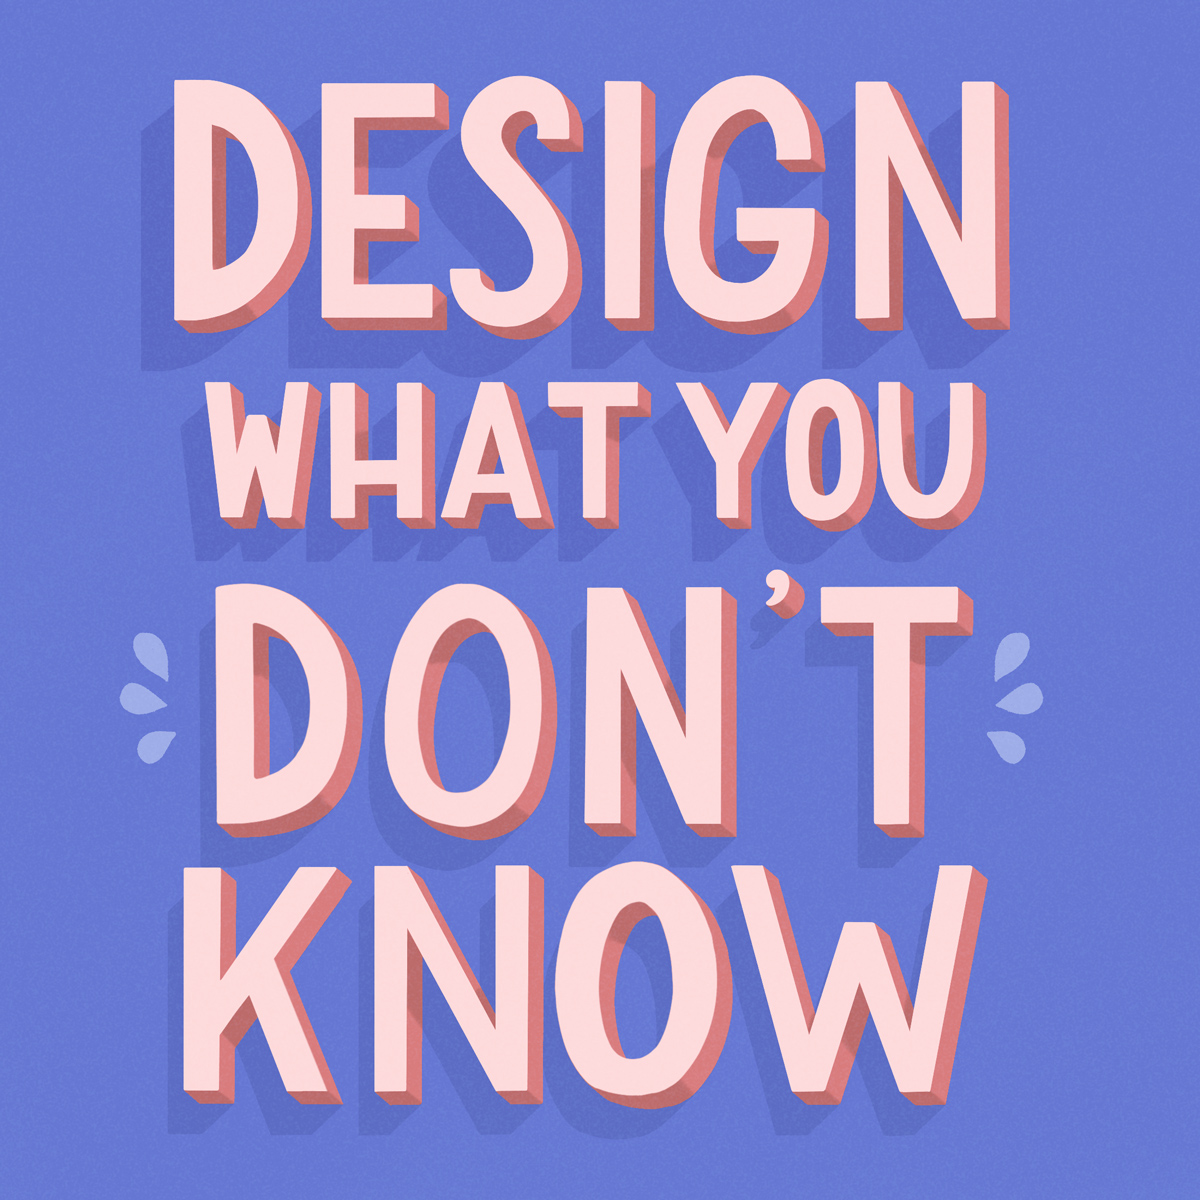 Design_What_You_Don't_Know.jpg